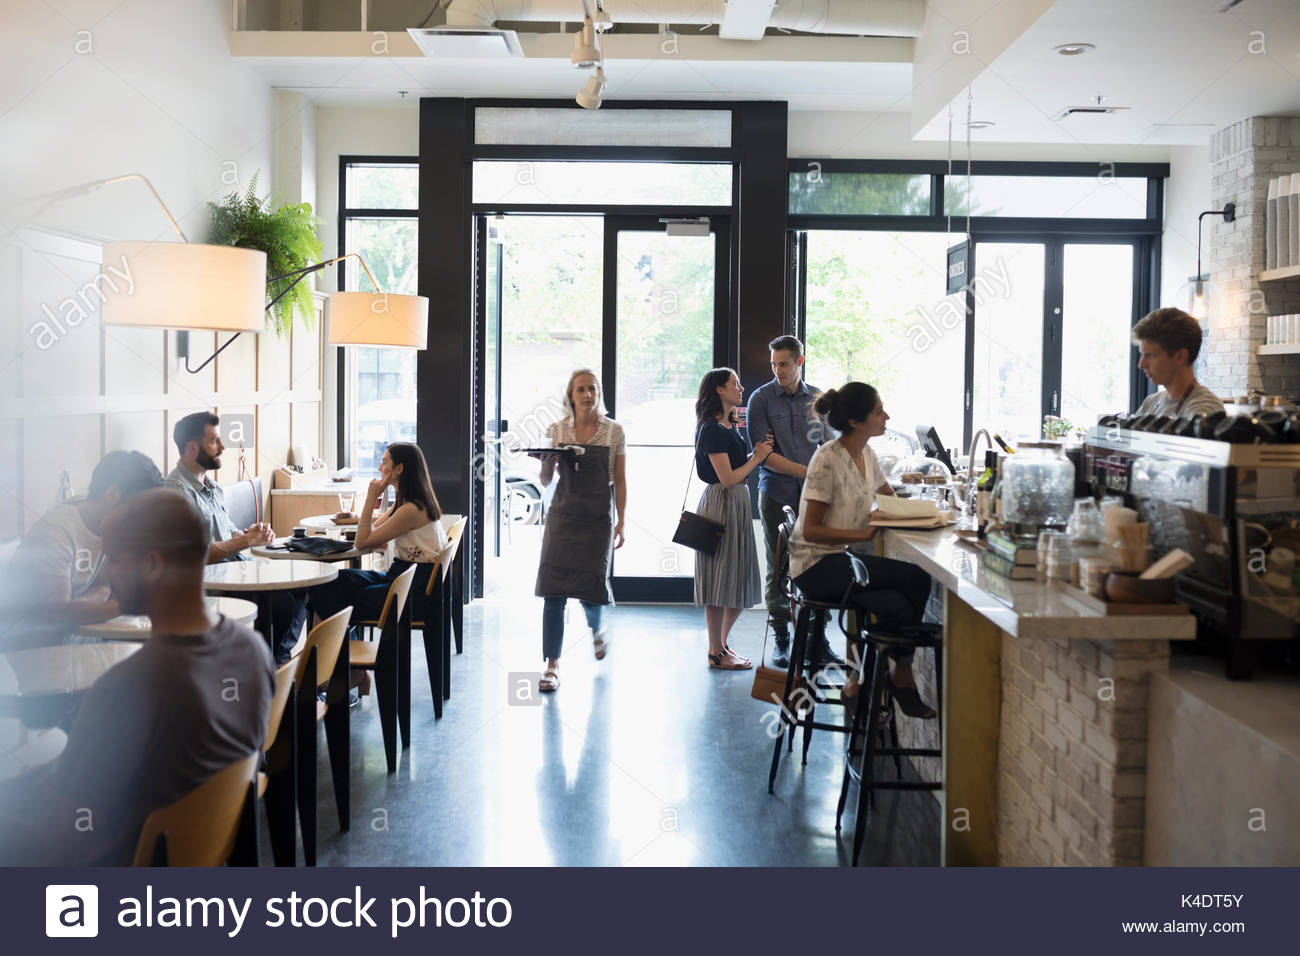 Waitress and customers in cafe - Stock Image